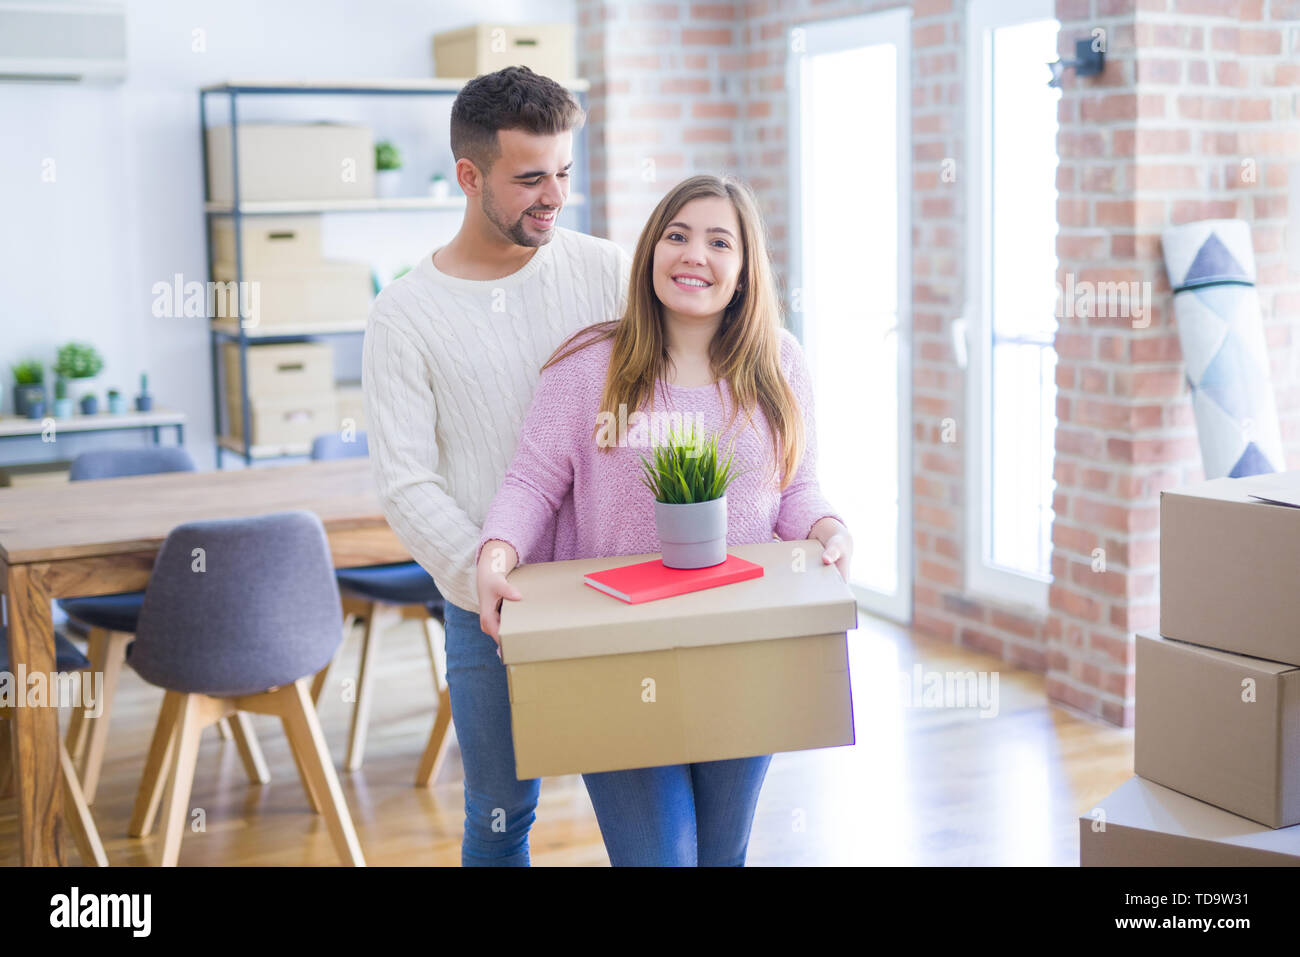 Young beautiful couple in love moving to new home, holding cardboard boxes very happy and cheerful for new apartment - Stock Image